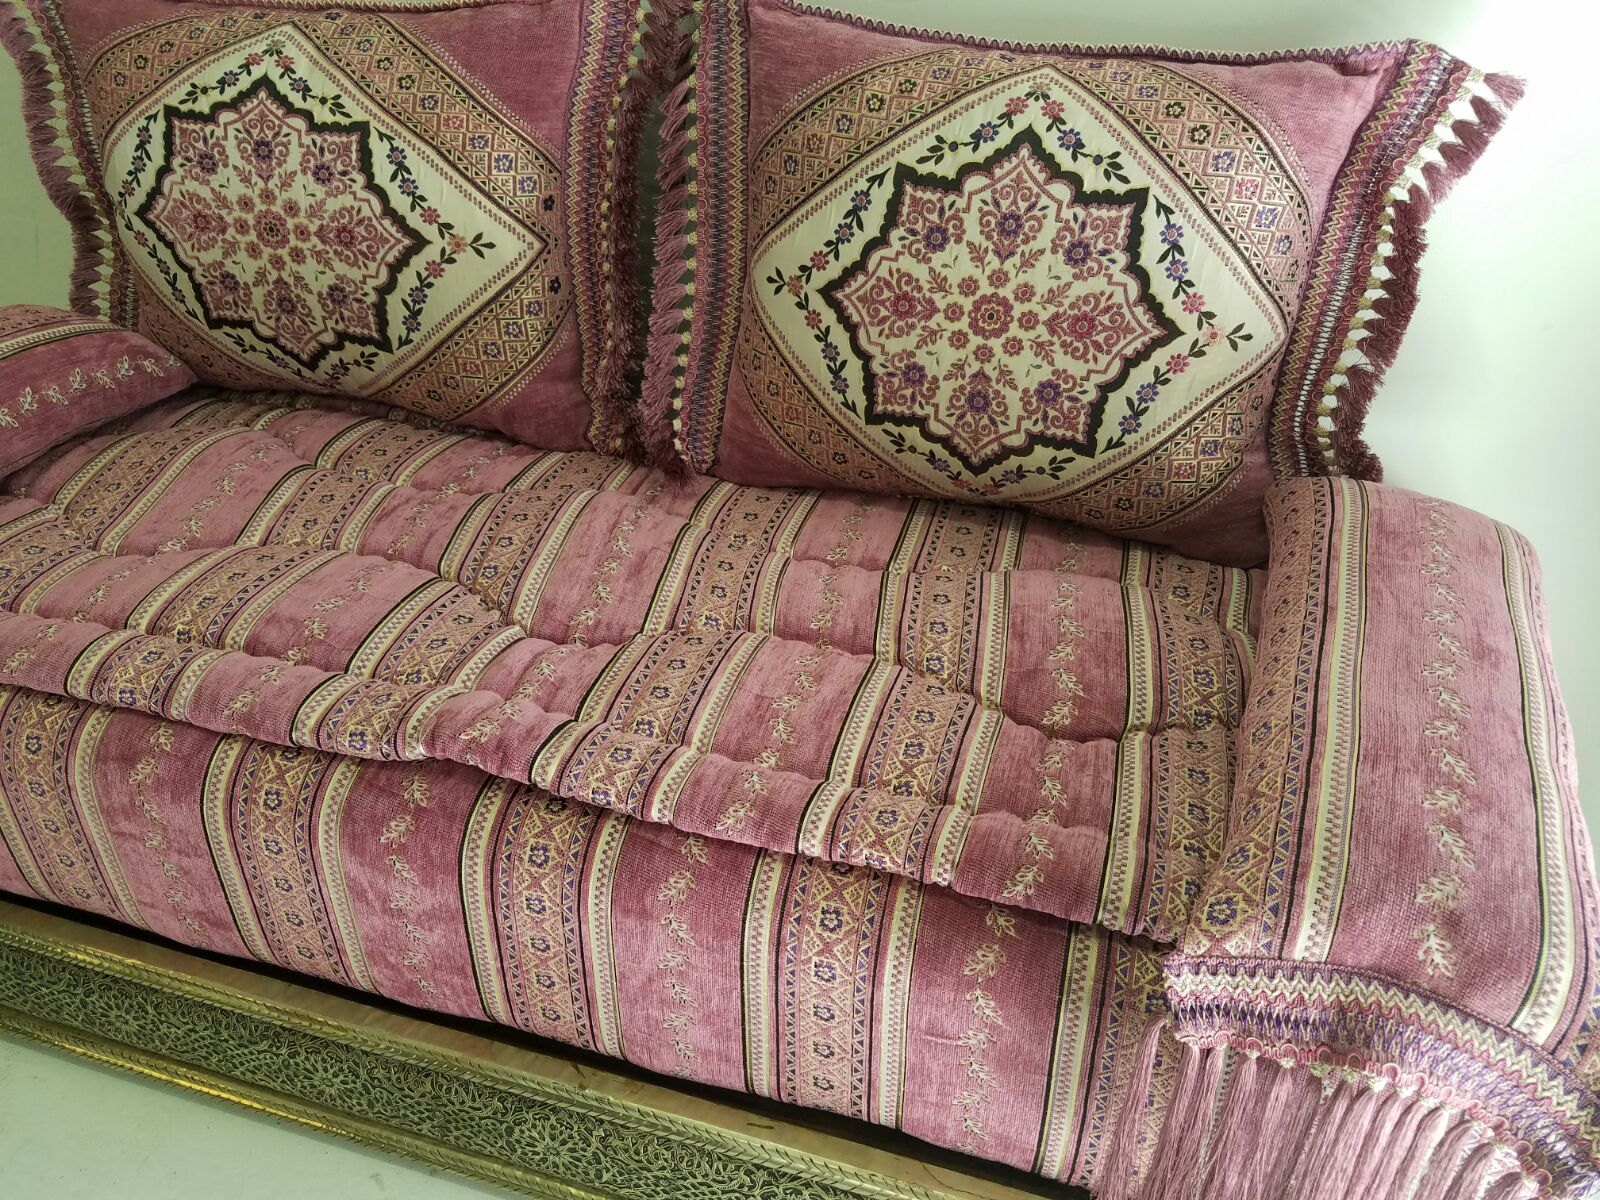 New Arrival A Gorgeous Moroccan Sofa With Quality Fabric Andalusian Wooden Moorish Carving Artwork Unique Great Workmanship All Handmade In Morocco